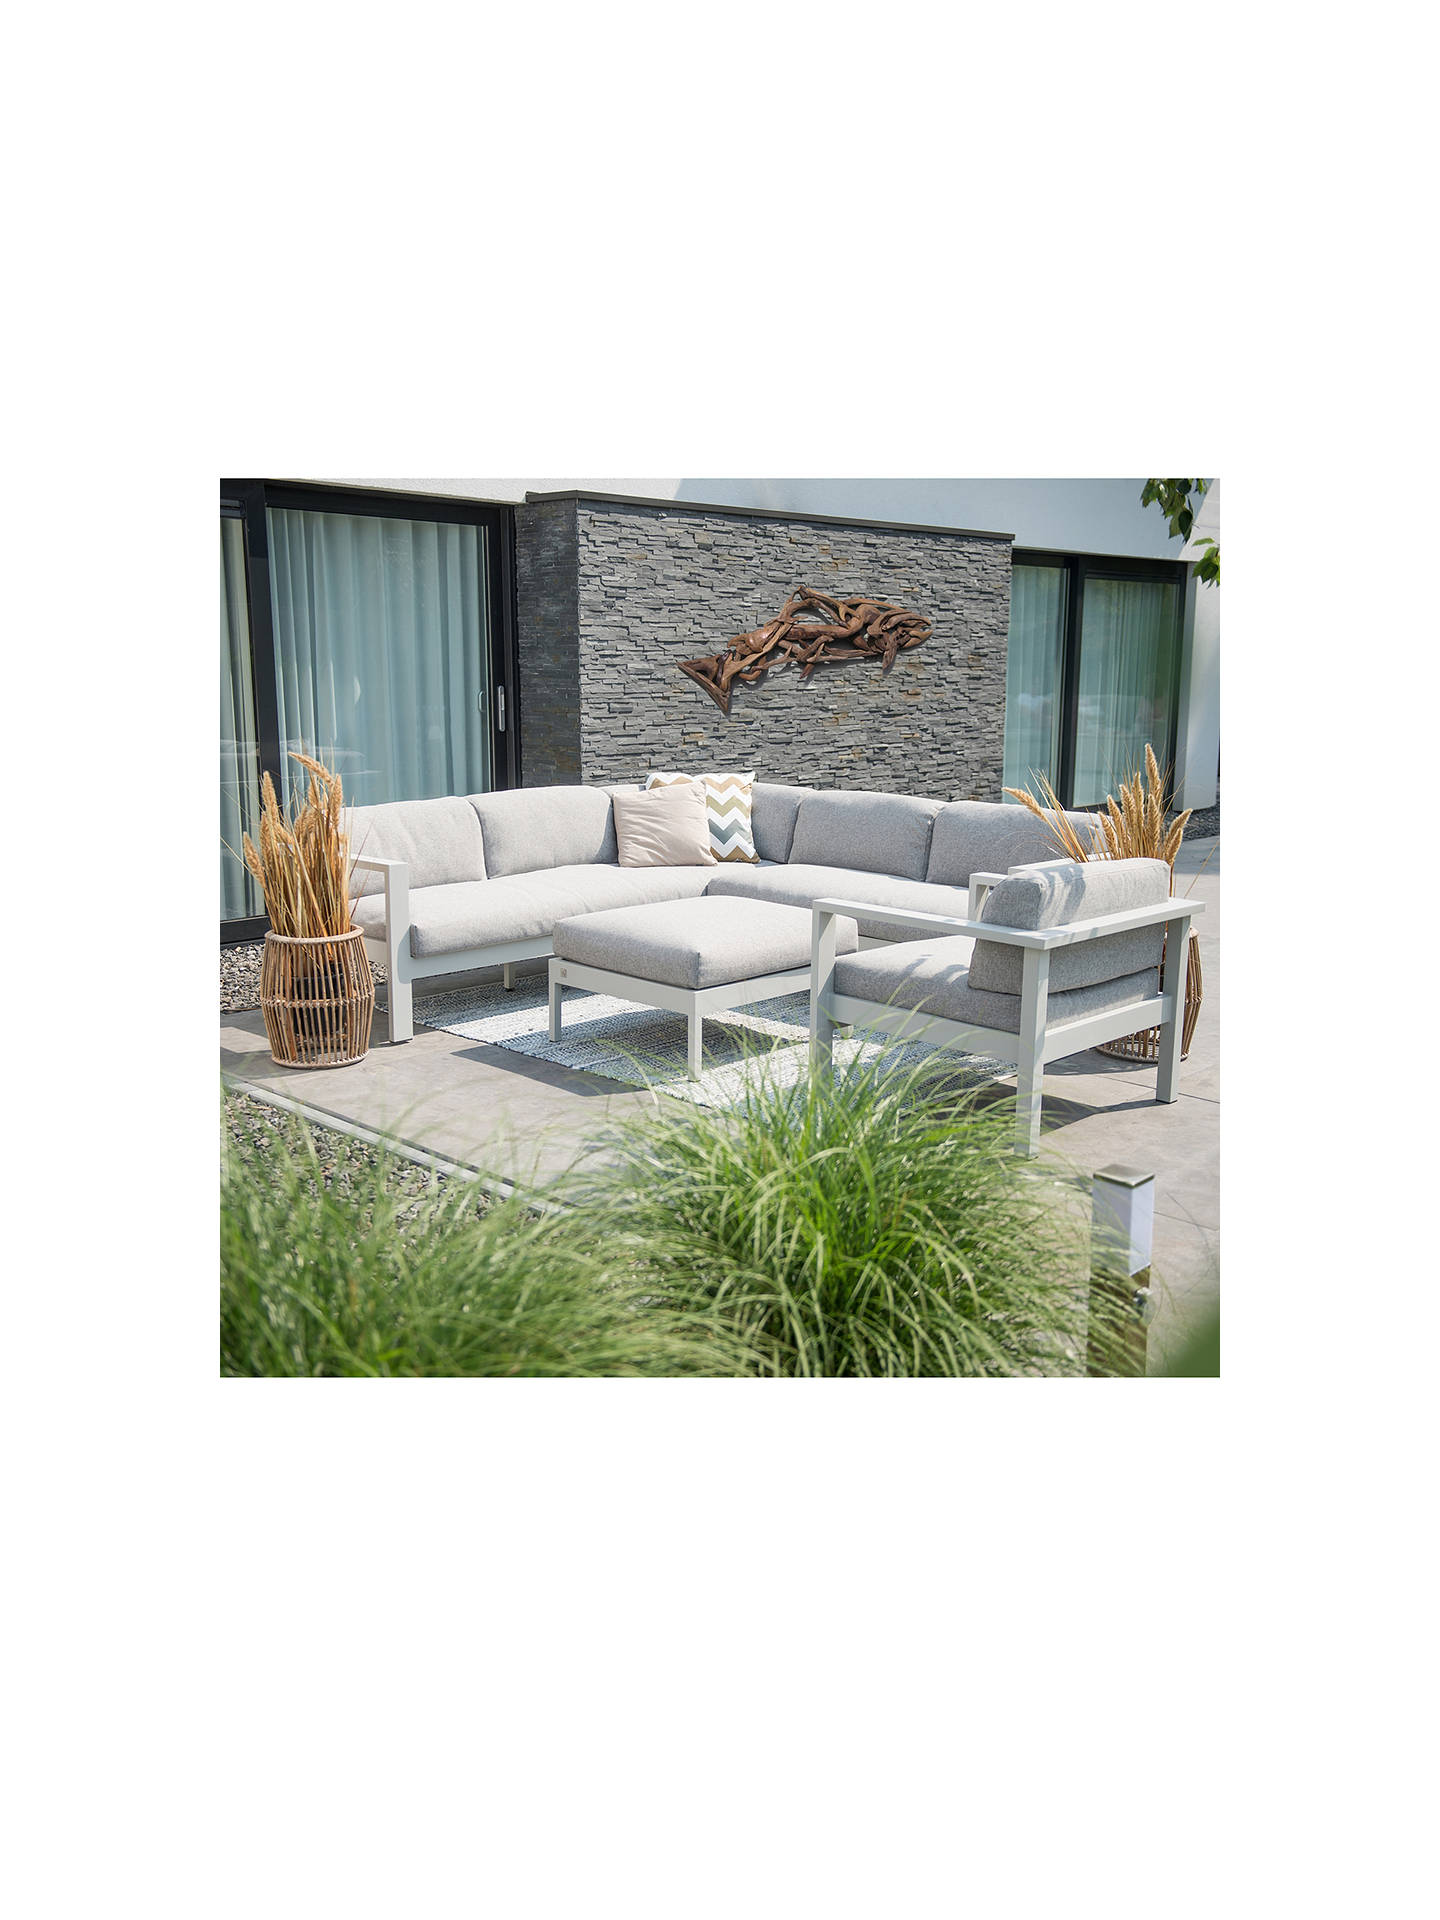 Buy 4 Seasons Outdoor Galaxy Garden Living Chair with Cushion Online at johnlewis.com